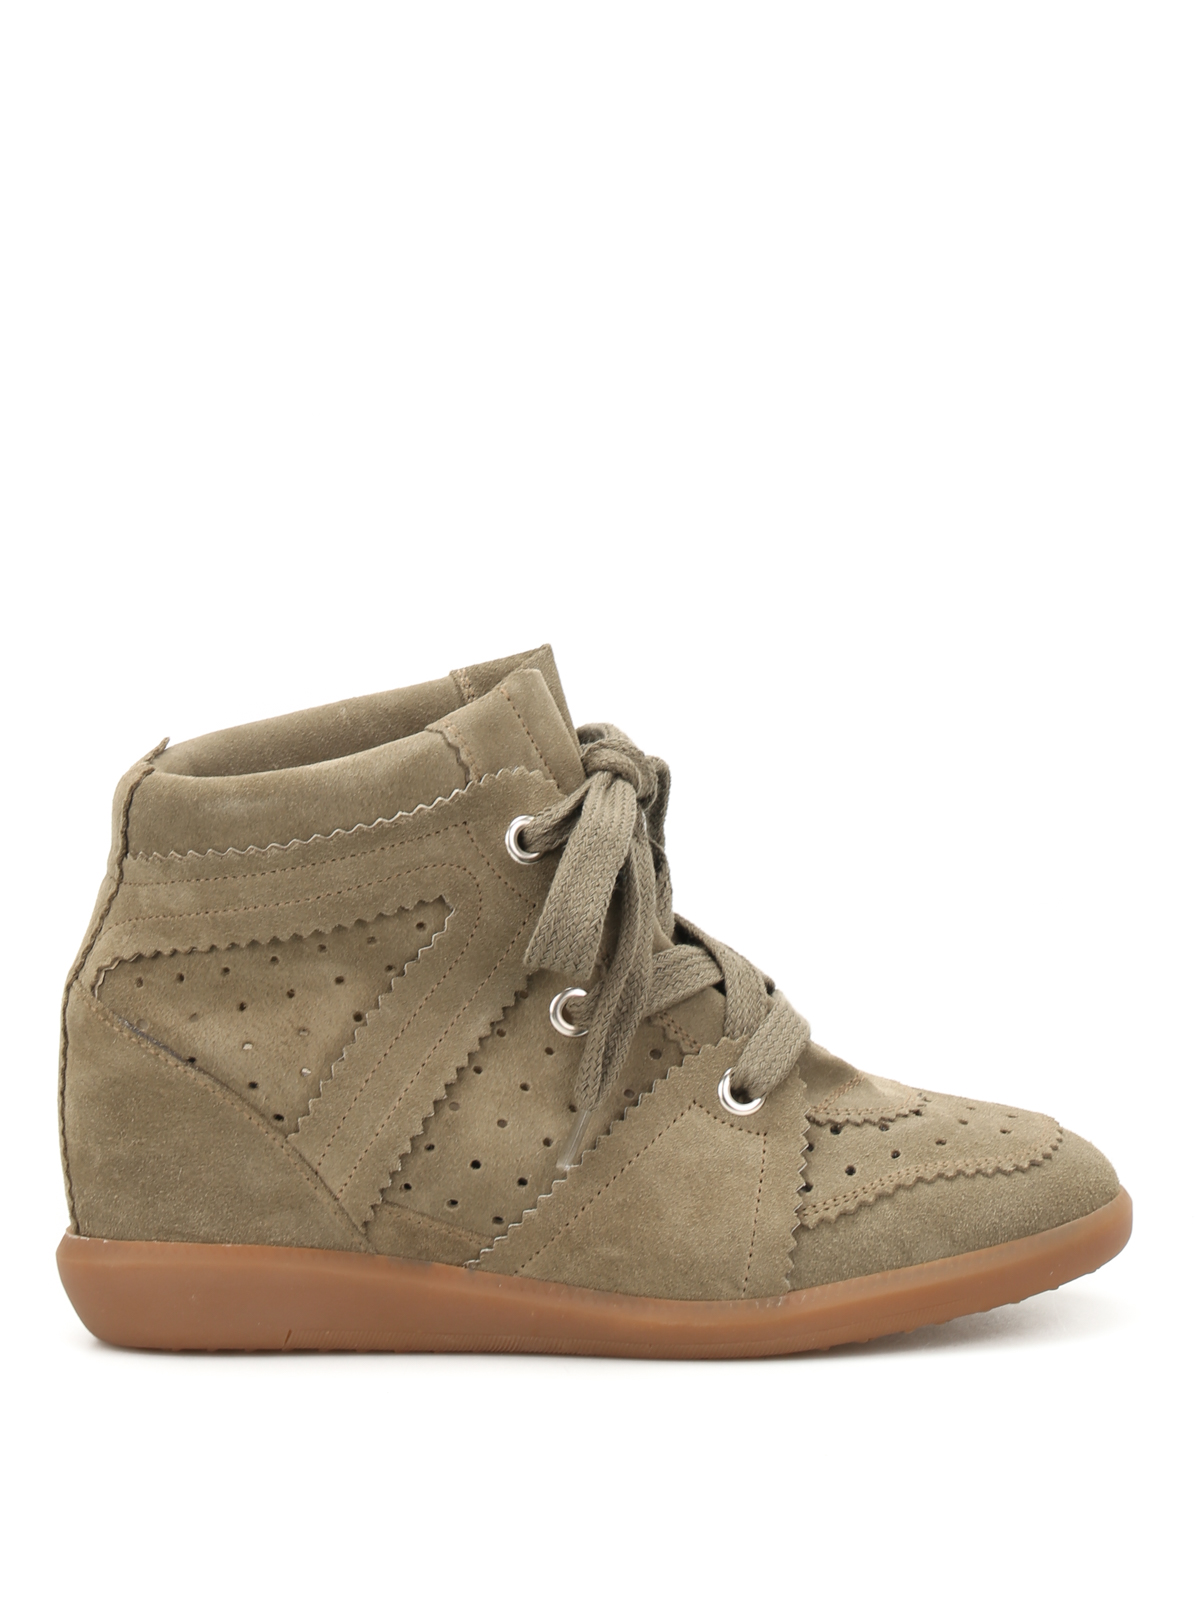 bobby inner wedge sneakers by isabel marant trainers ikrix. Black Bedroom Furniture Sets. Home Design Ideas